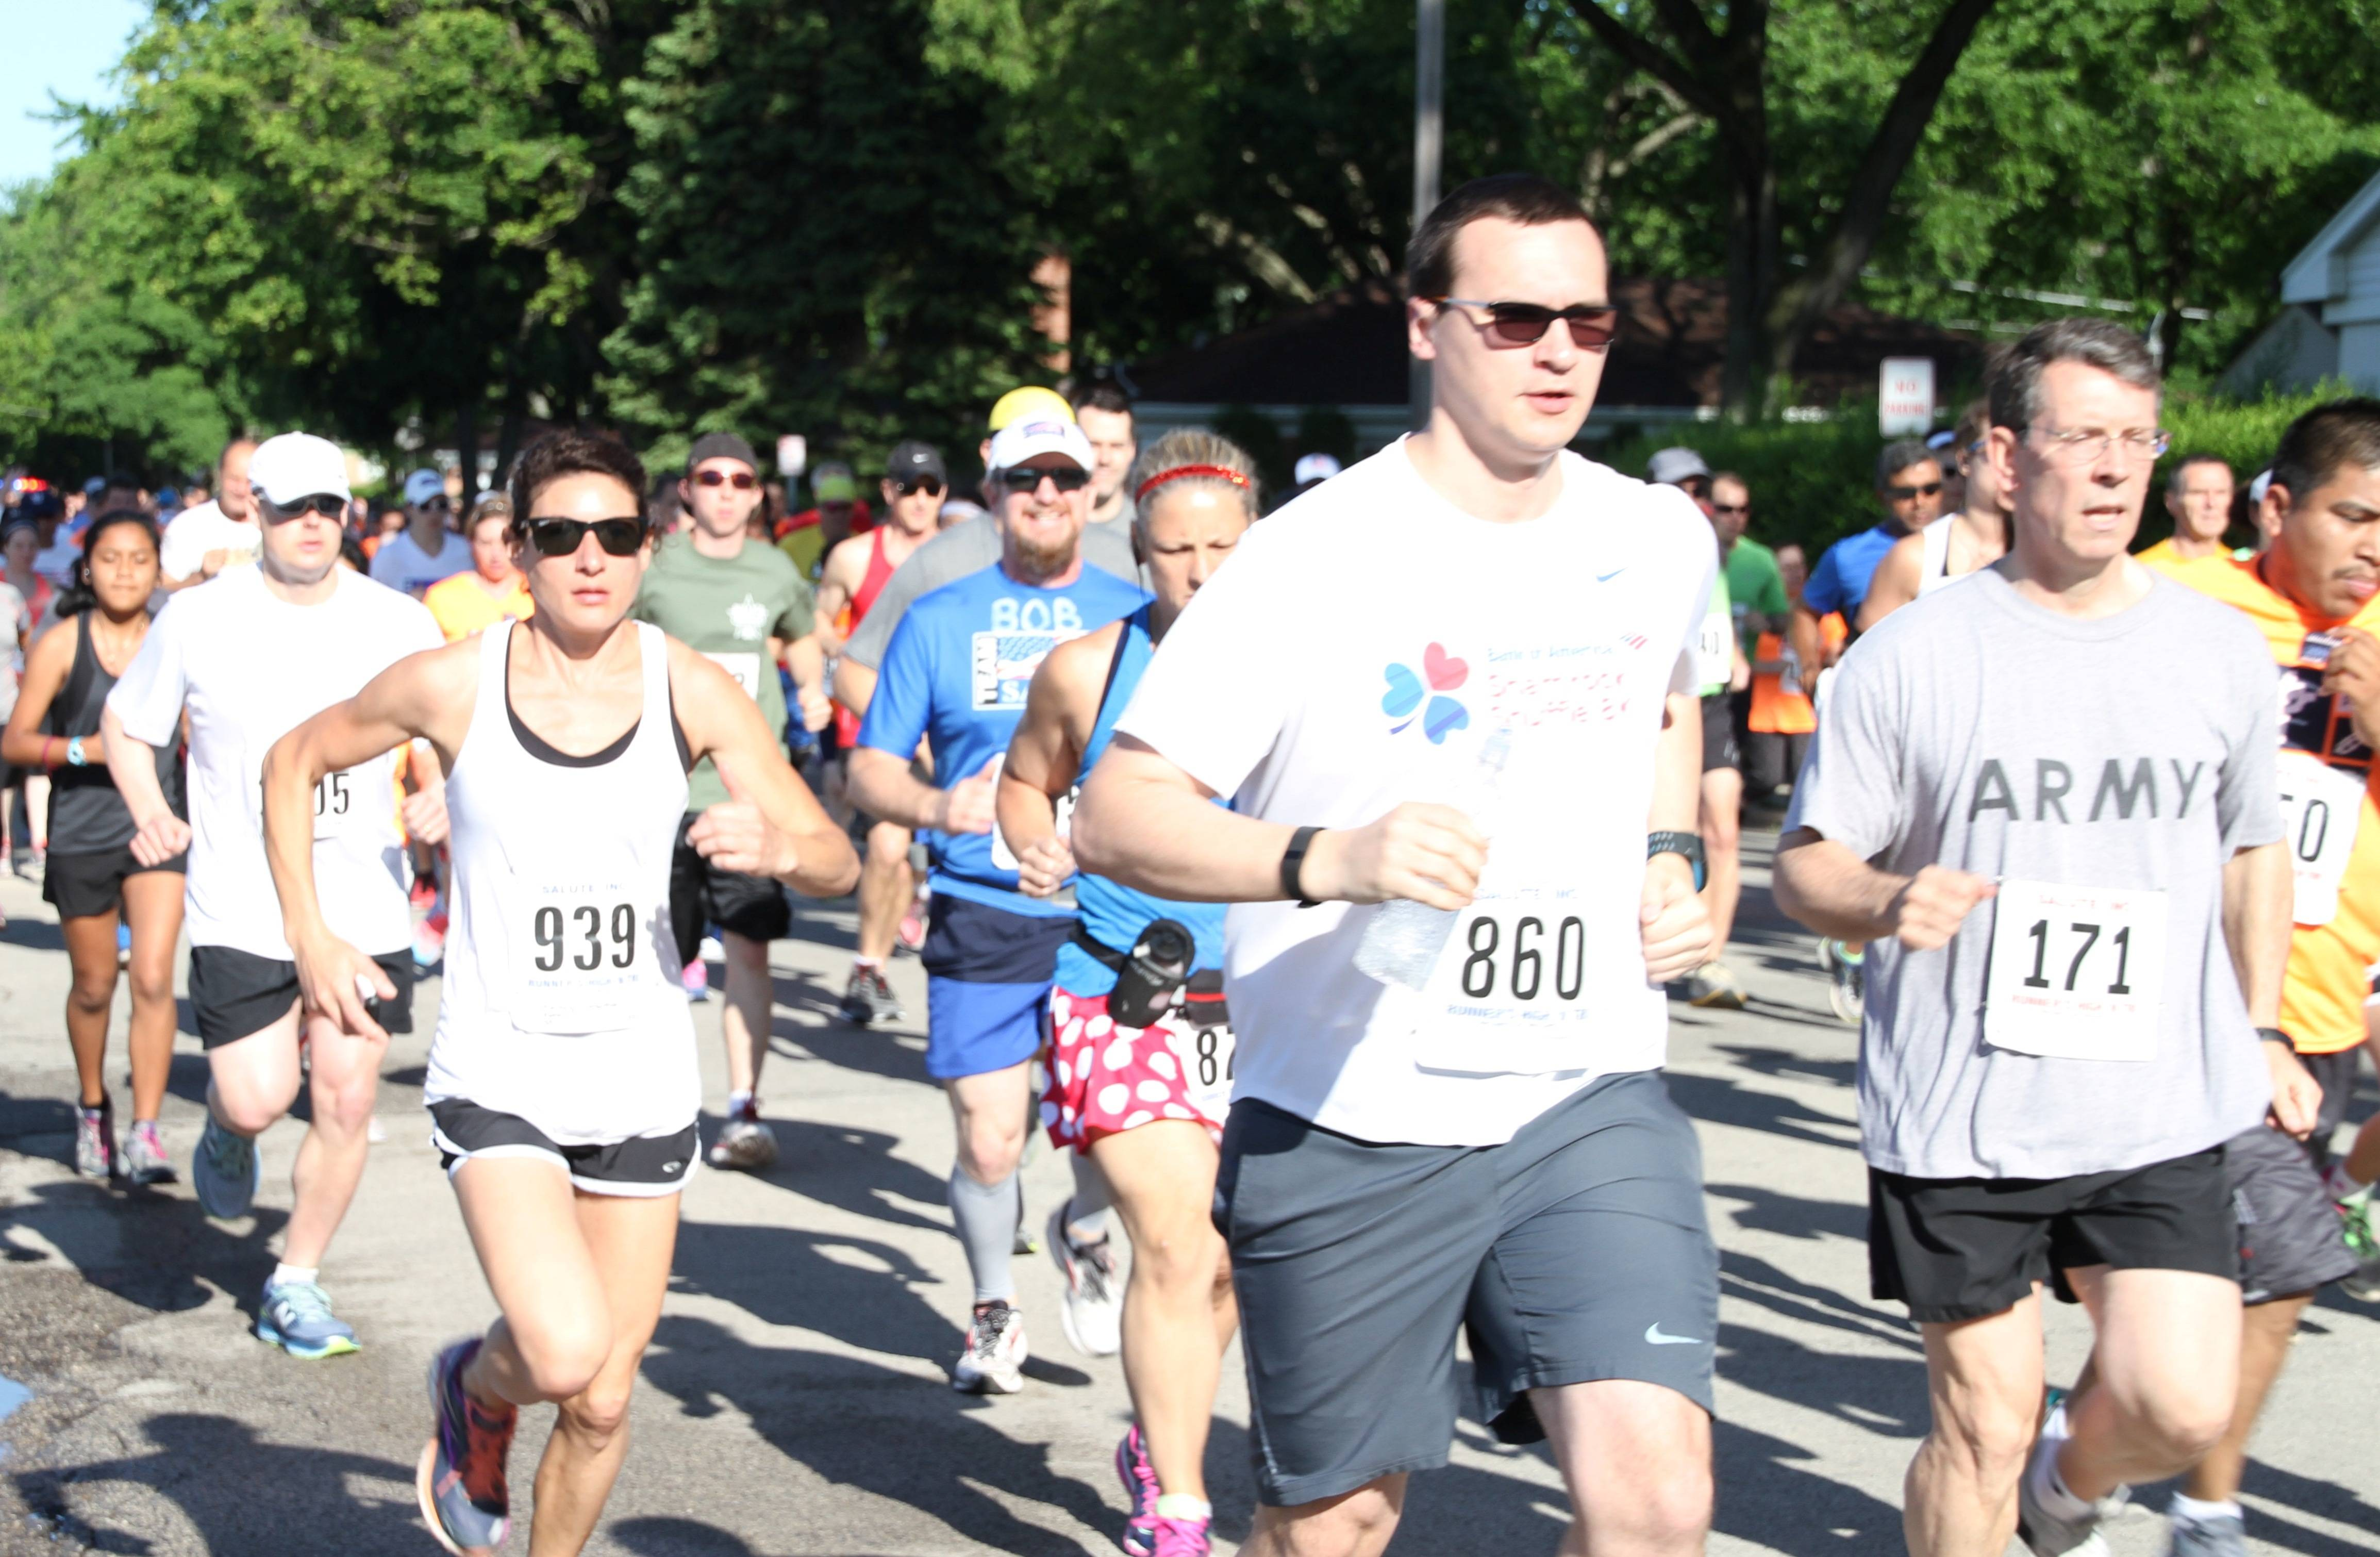 Join SALUTE. INC.'s annual Memorial Day Weekend 5K/10K in Arlington Heights.